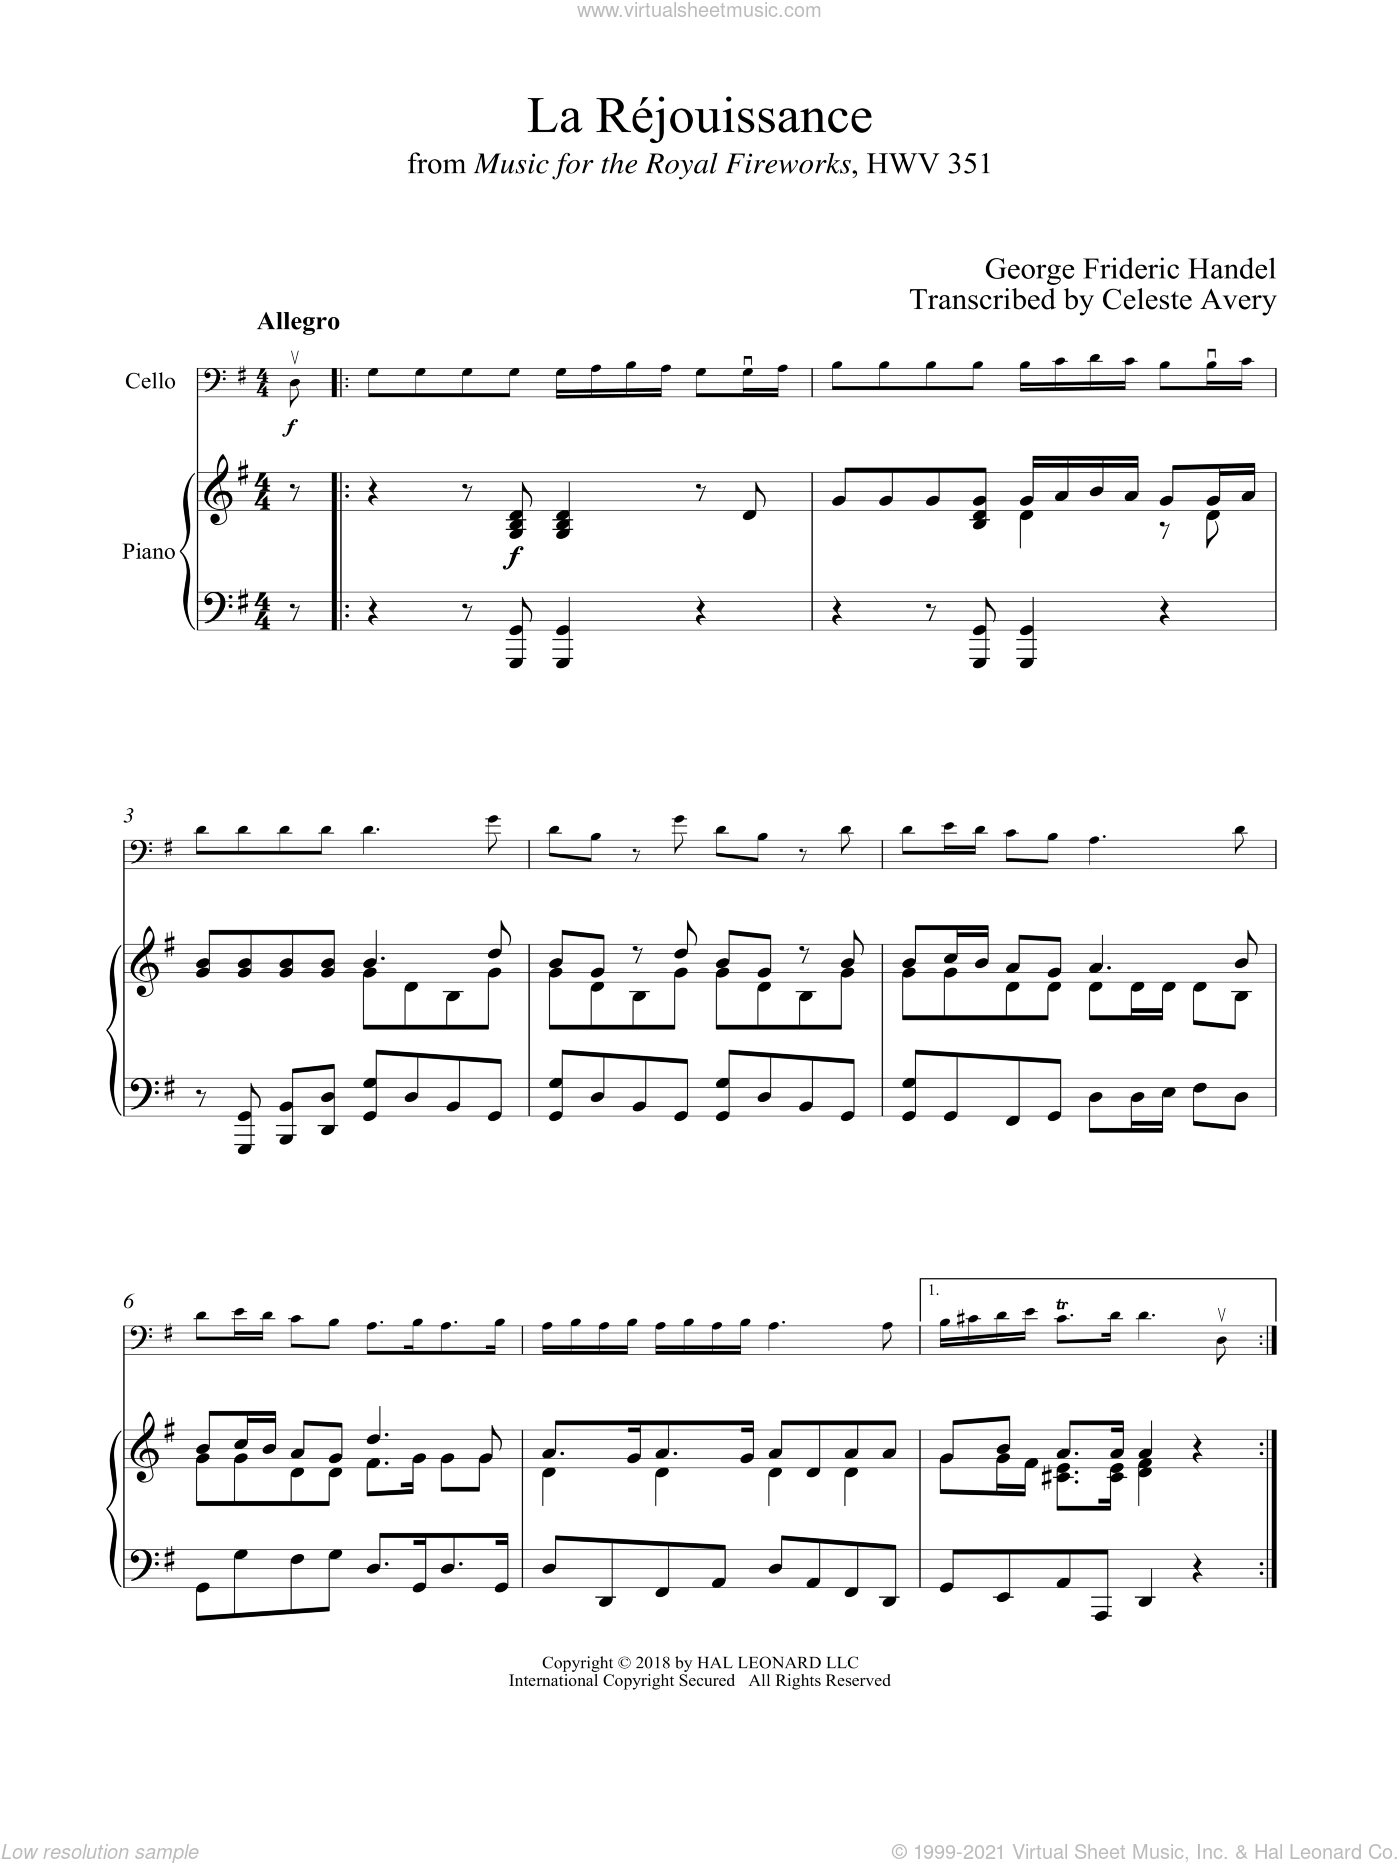 La Rejouissance sheet music for cello and piano by George Frideric Handel, classical score, intermediate skill level